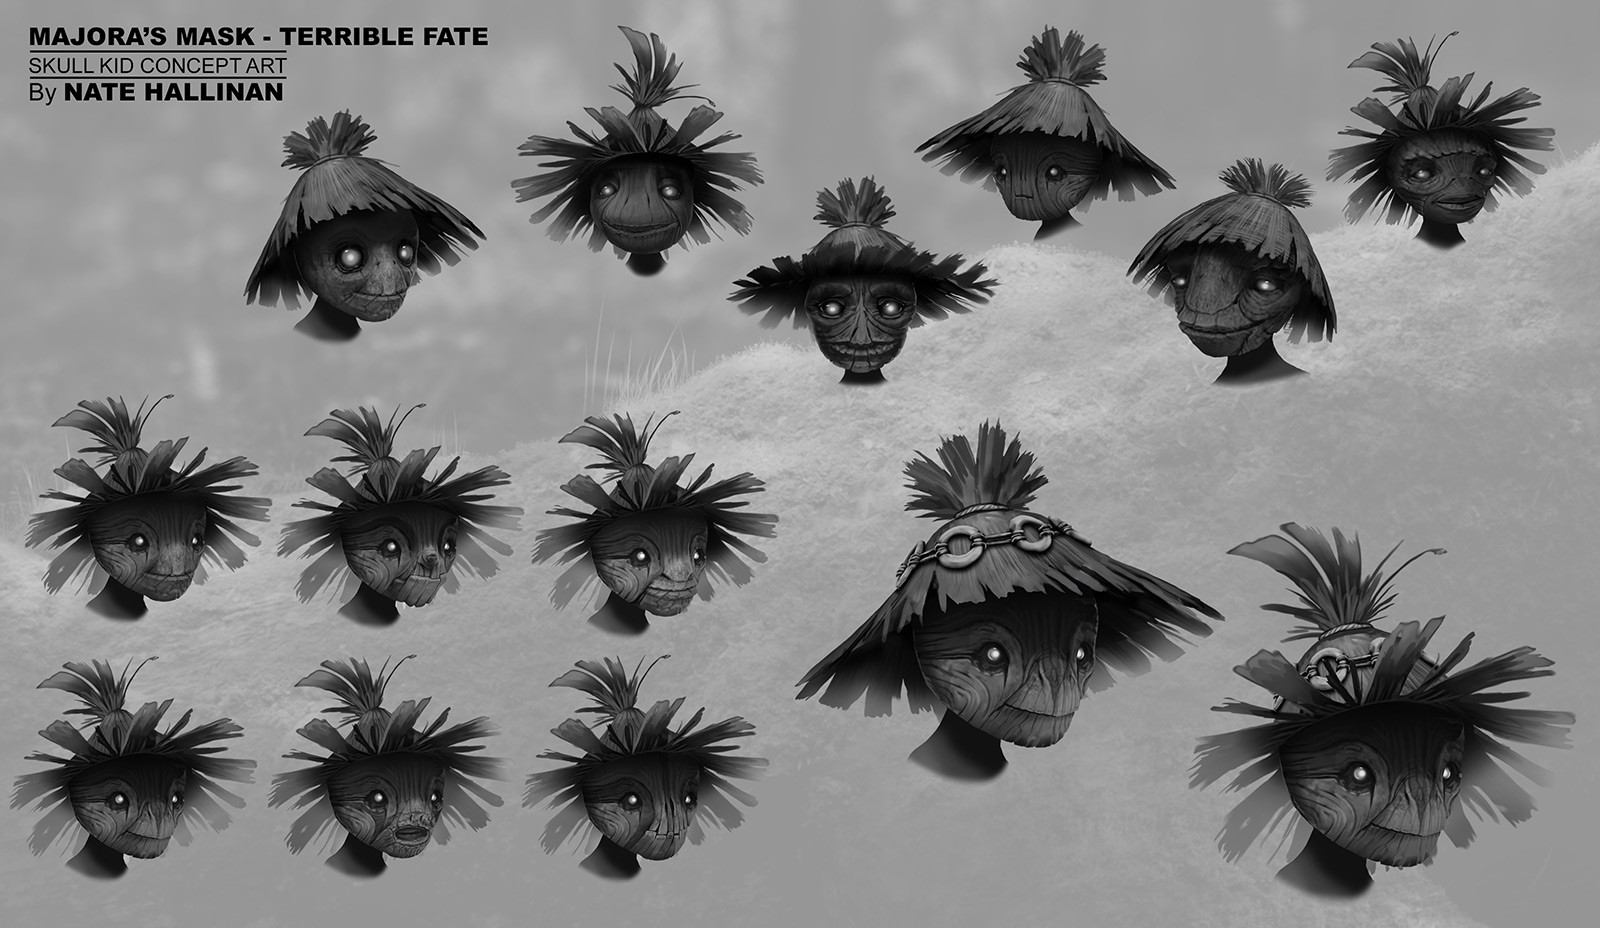 Skull Kid Face Rough designs. We wanted to make something that was kind of cute but played with making him a little creepy too/